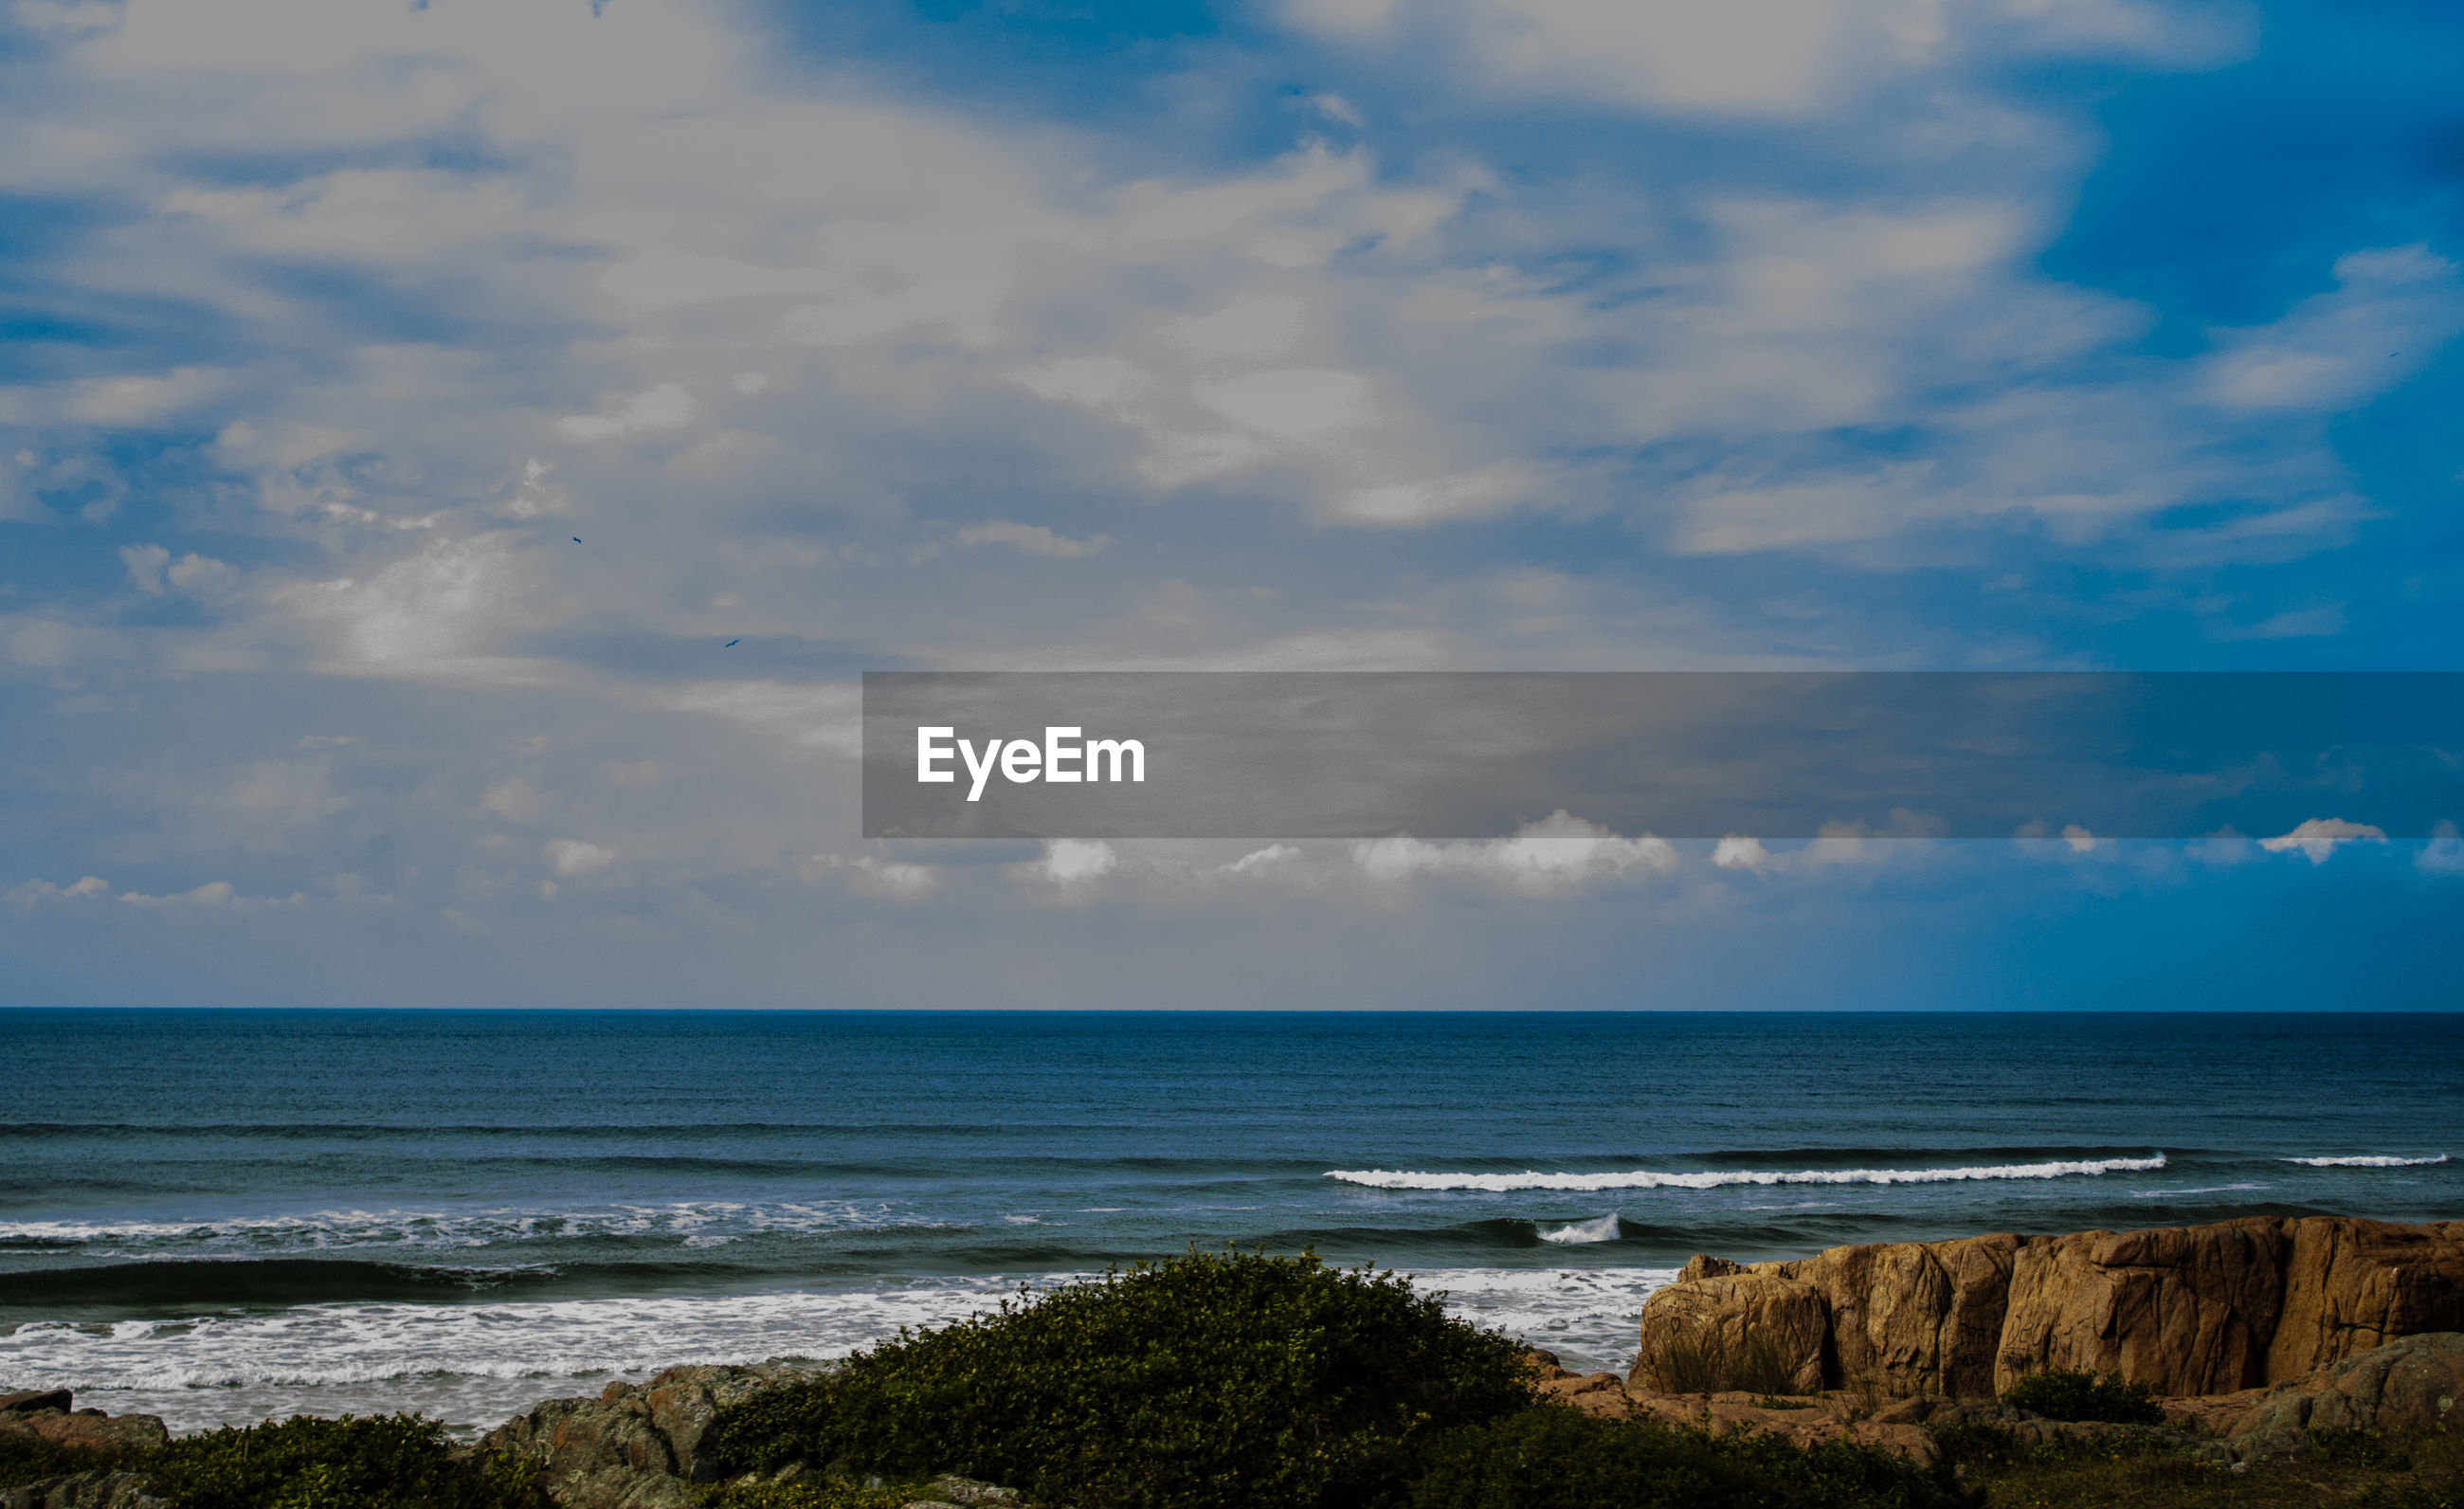 SCENIC VIEW OF SEA AND MOUNTAIN AGAINST CLOUDY SKY